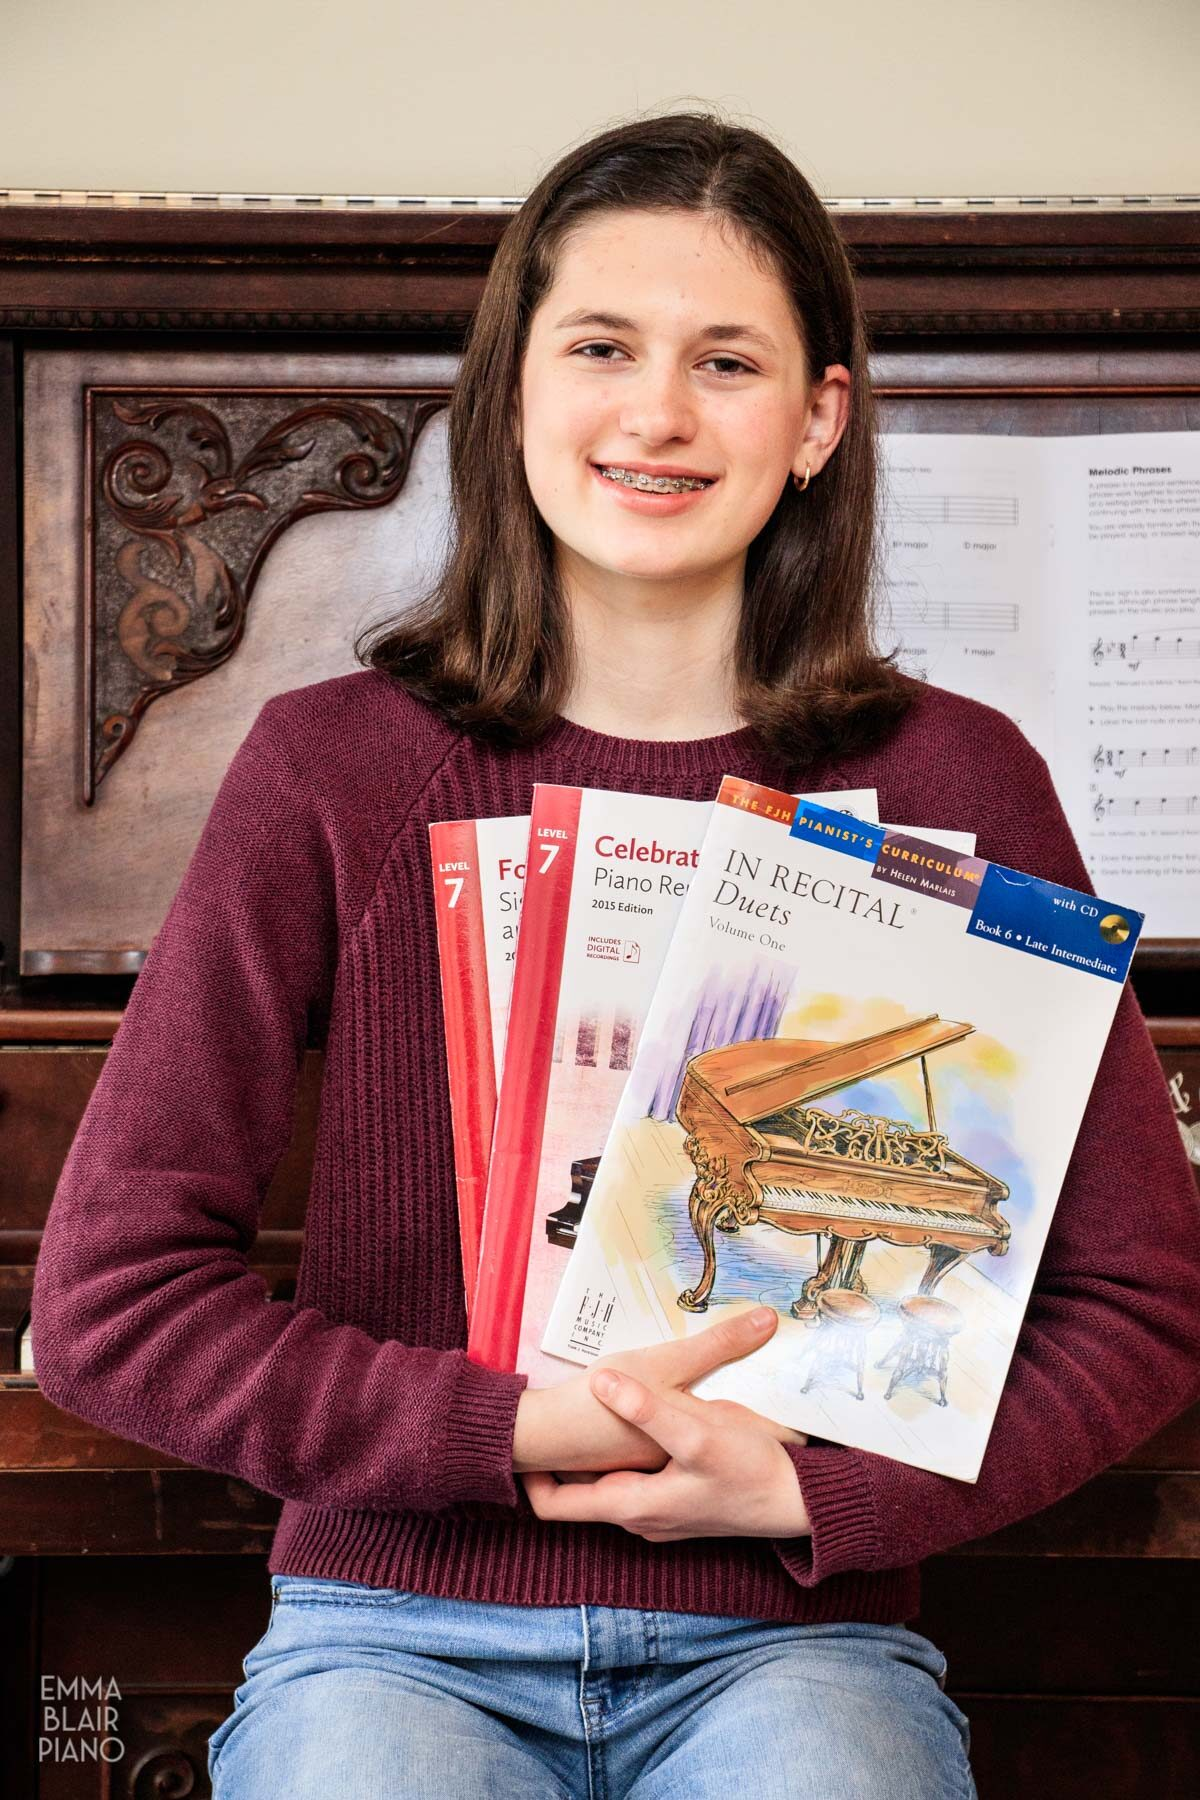 teenage girl holding piano music books and smiling